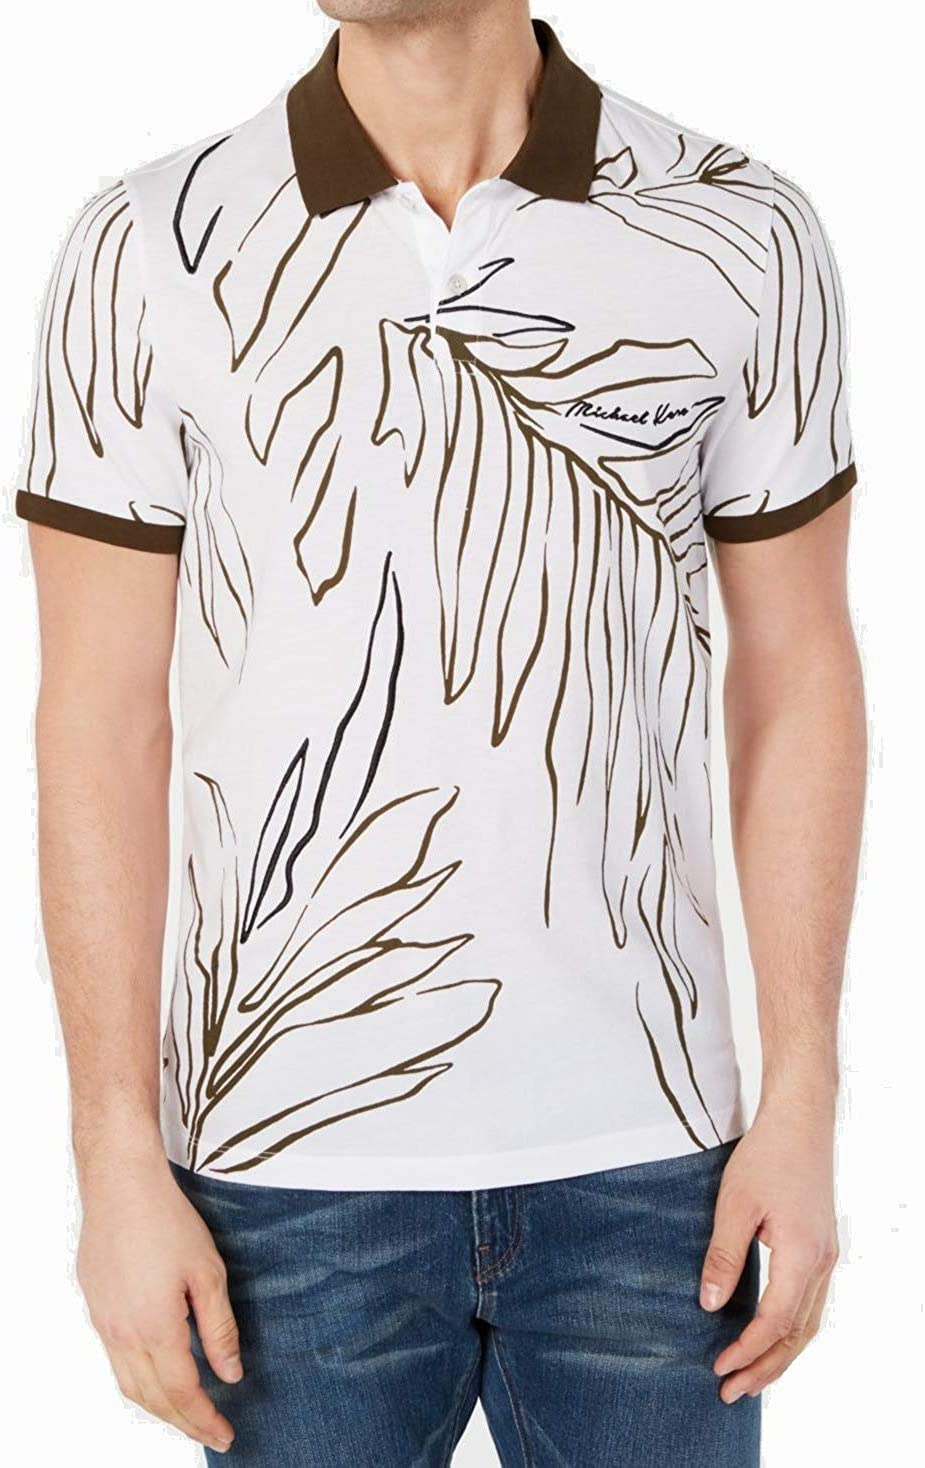 Michael Kors Mens Shirt Brown Polo Palm Leaf Print White XL ...